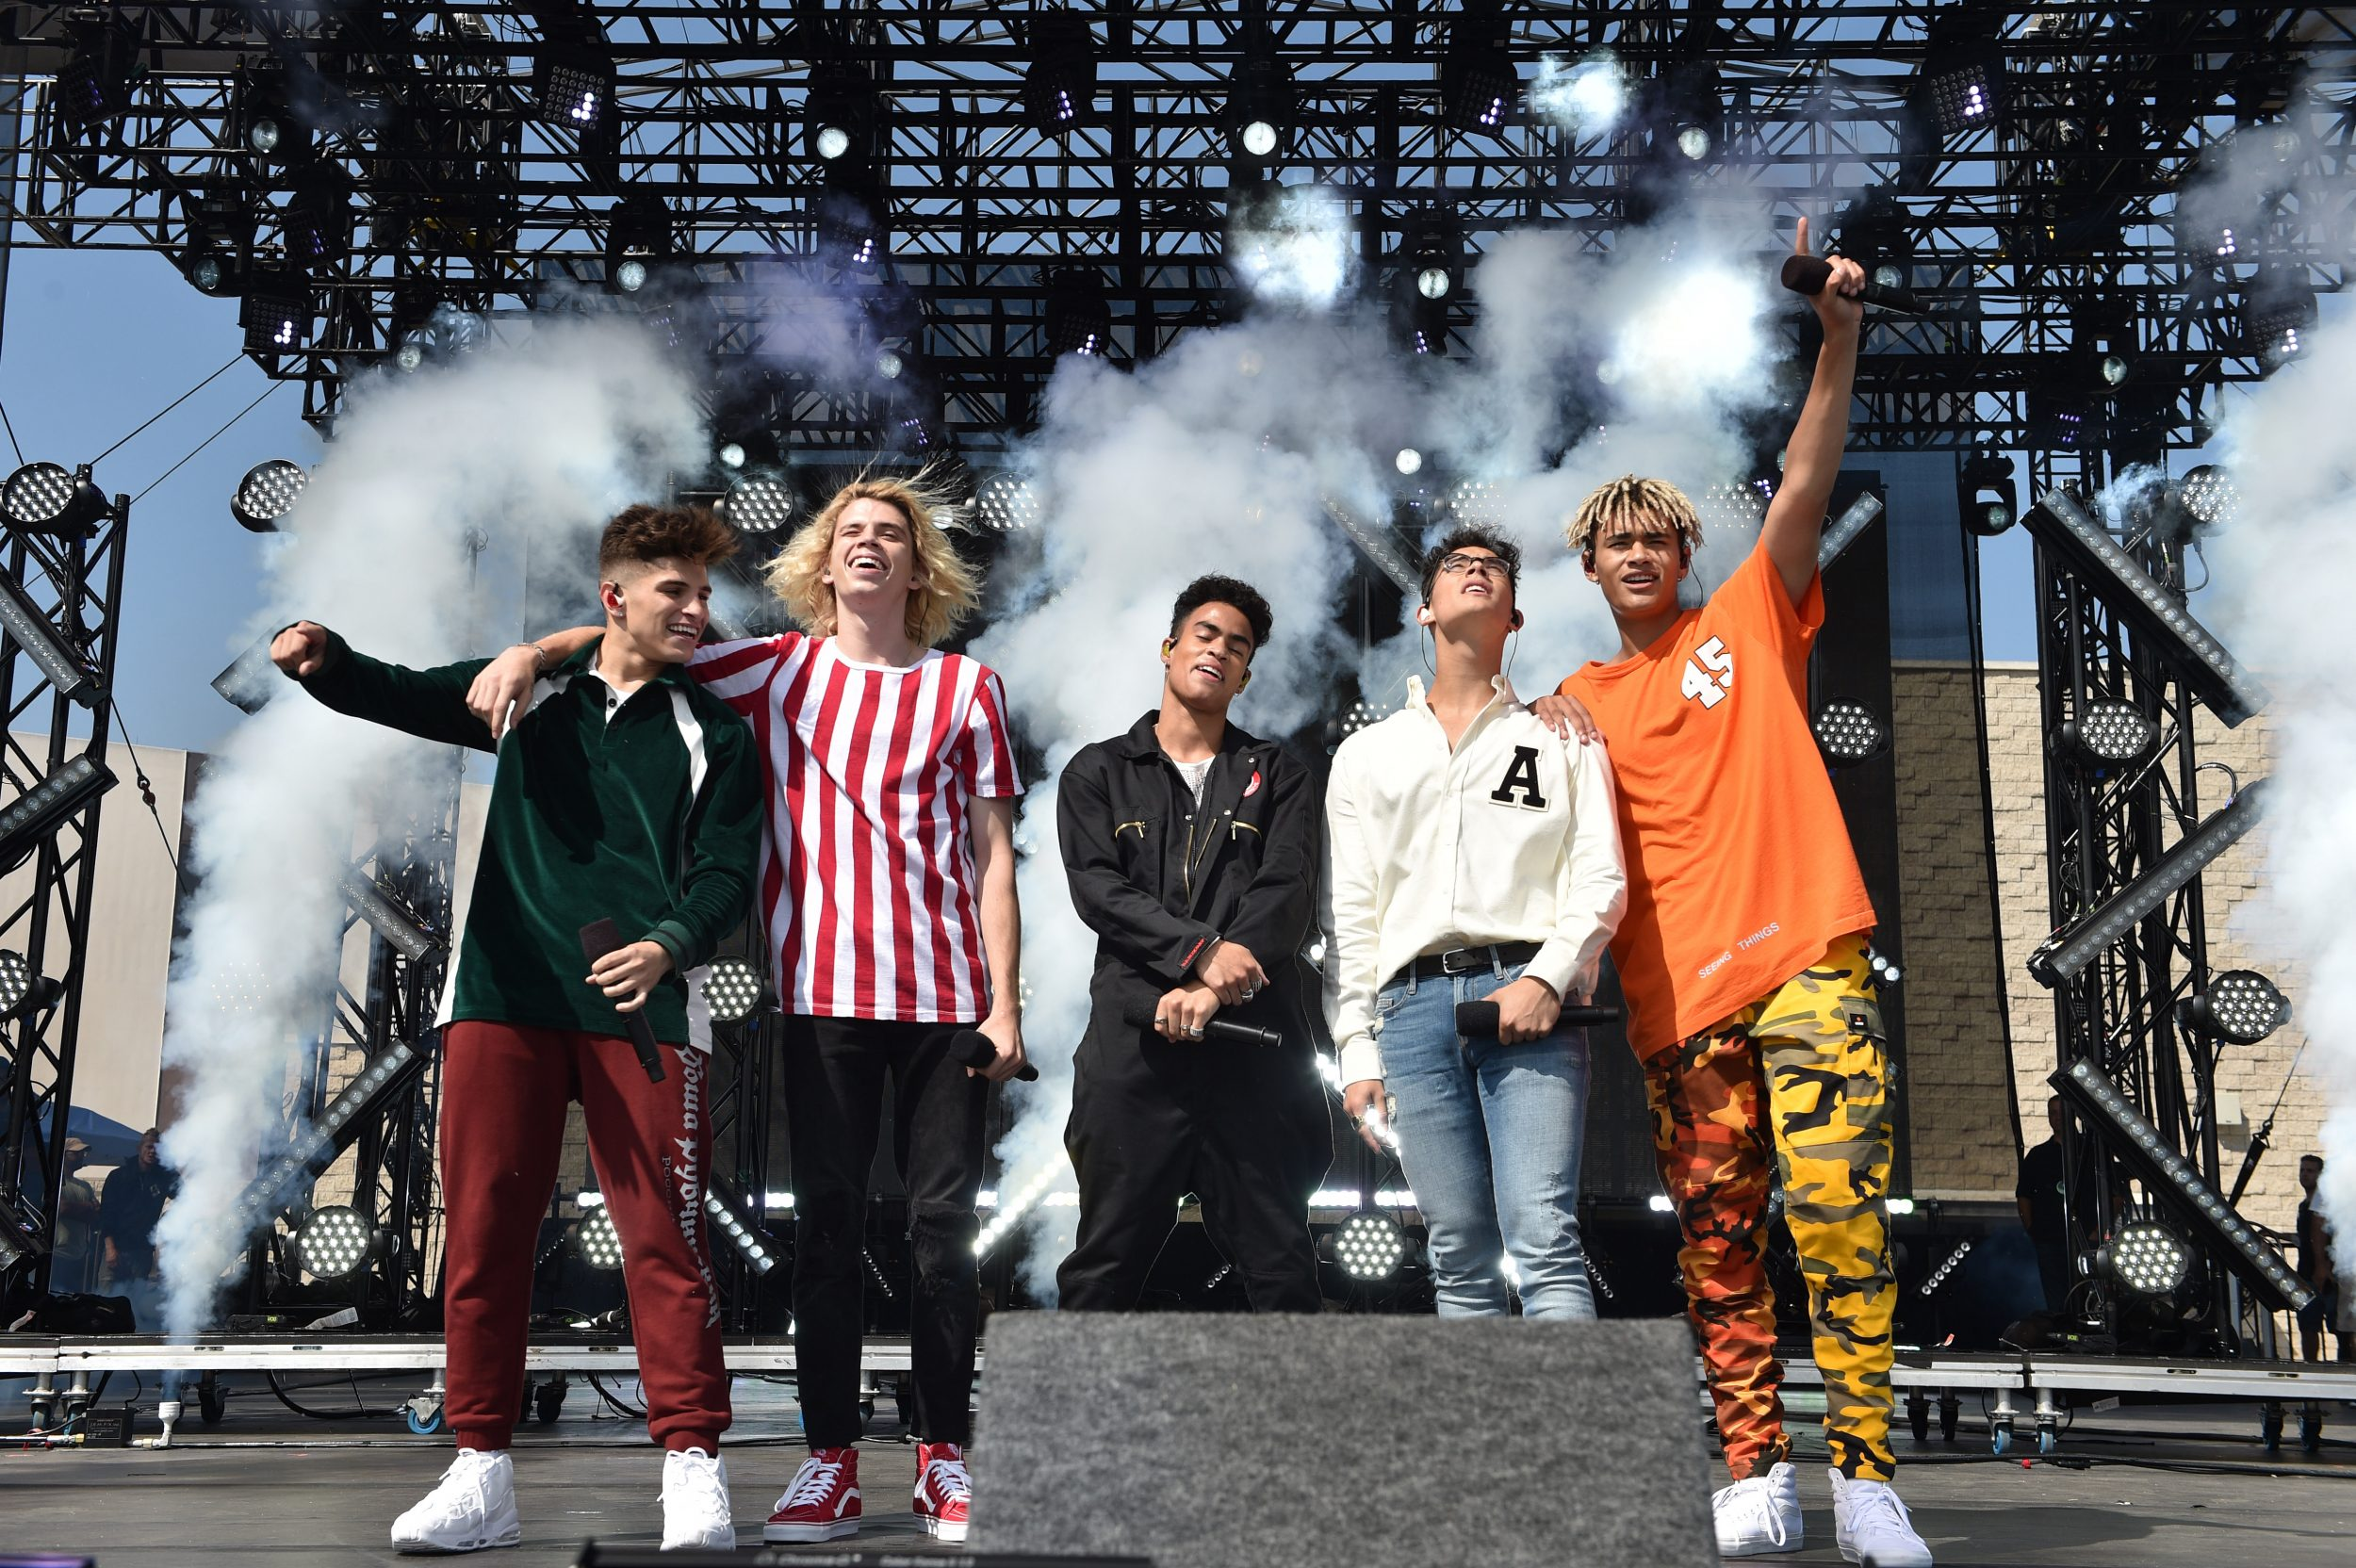 Songs By PRETTYMUCH The Script The Revivalists AJR DeJ